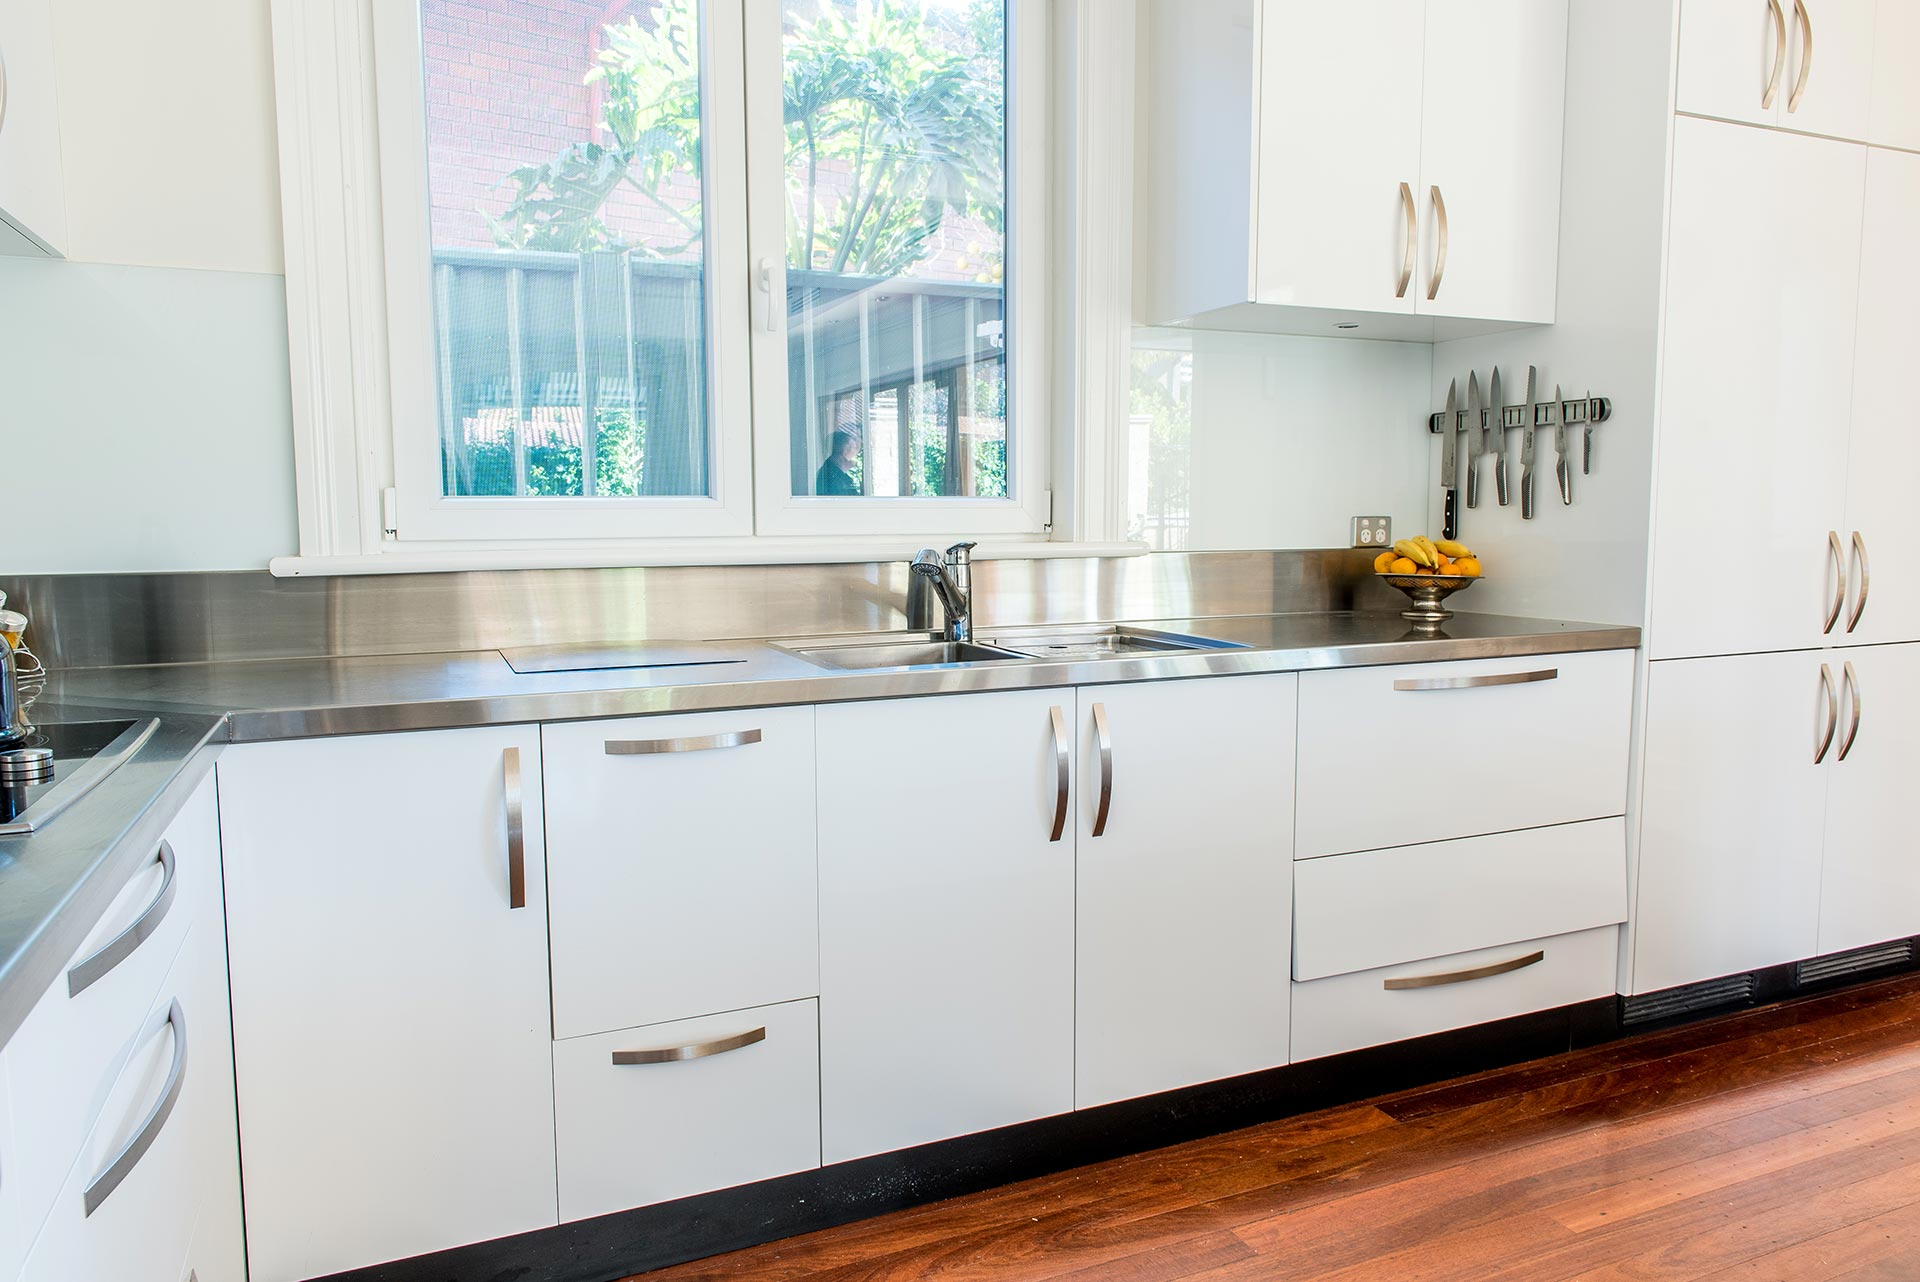 Kitchen Renovations Perth | Luxury Kitchen Perth - Alltech Cabinets